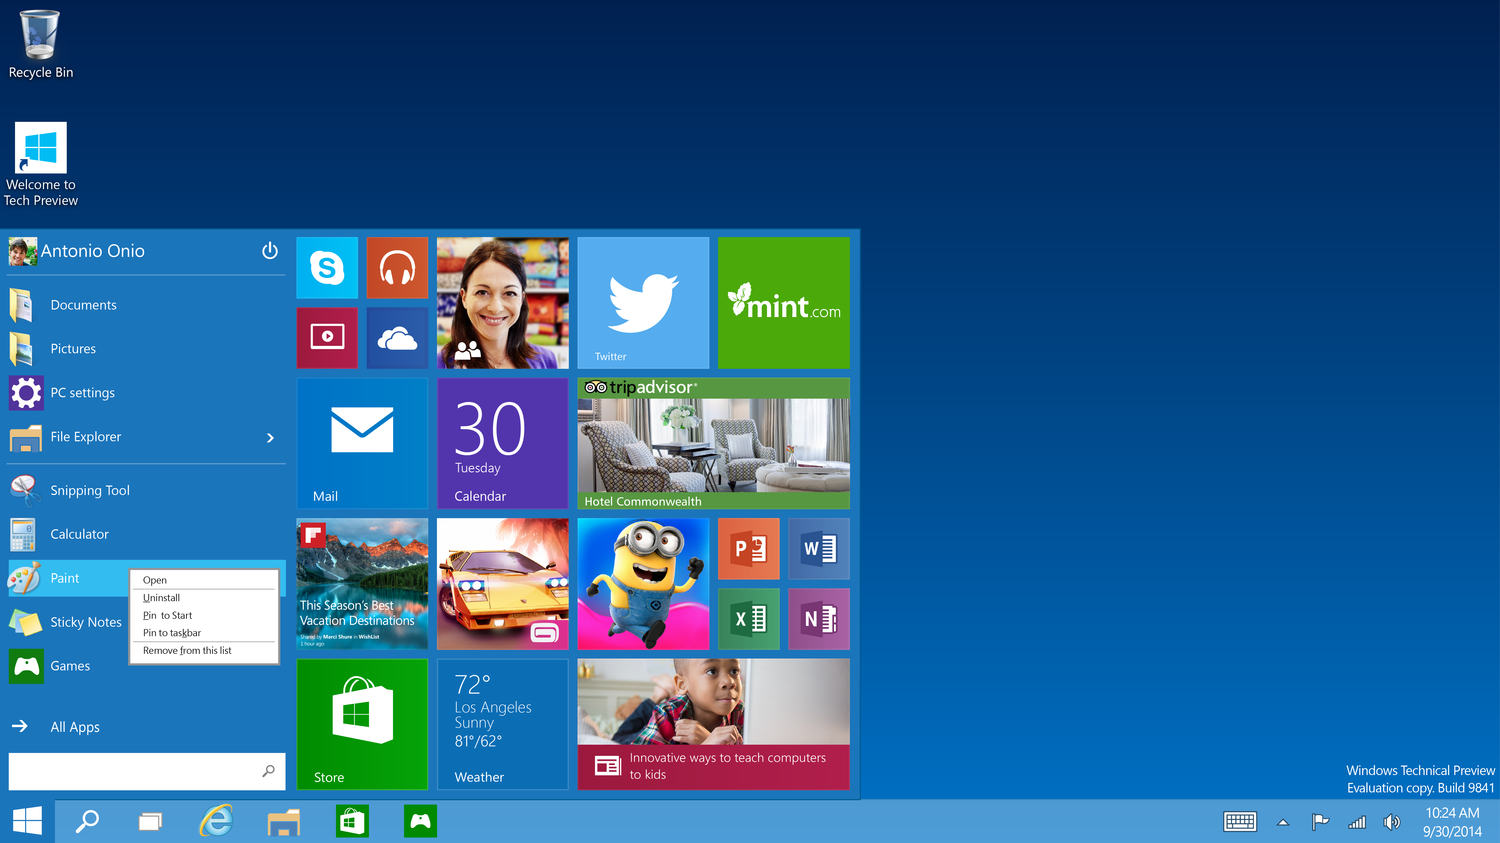 6 Things We Learned From The Windows 10 Event